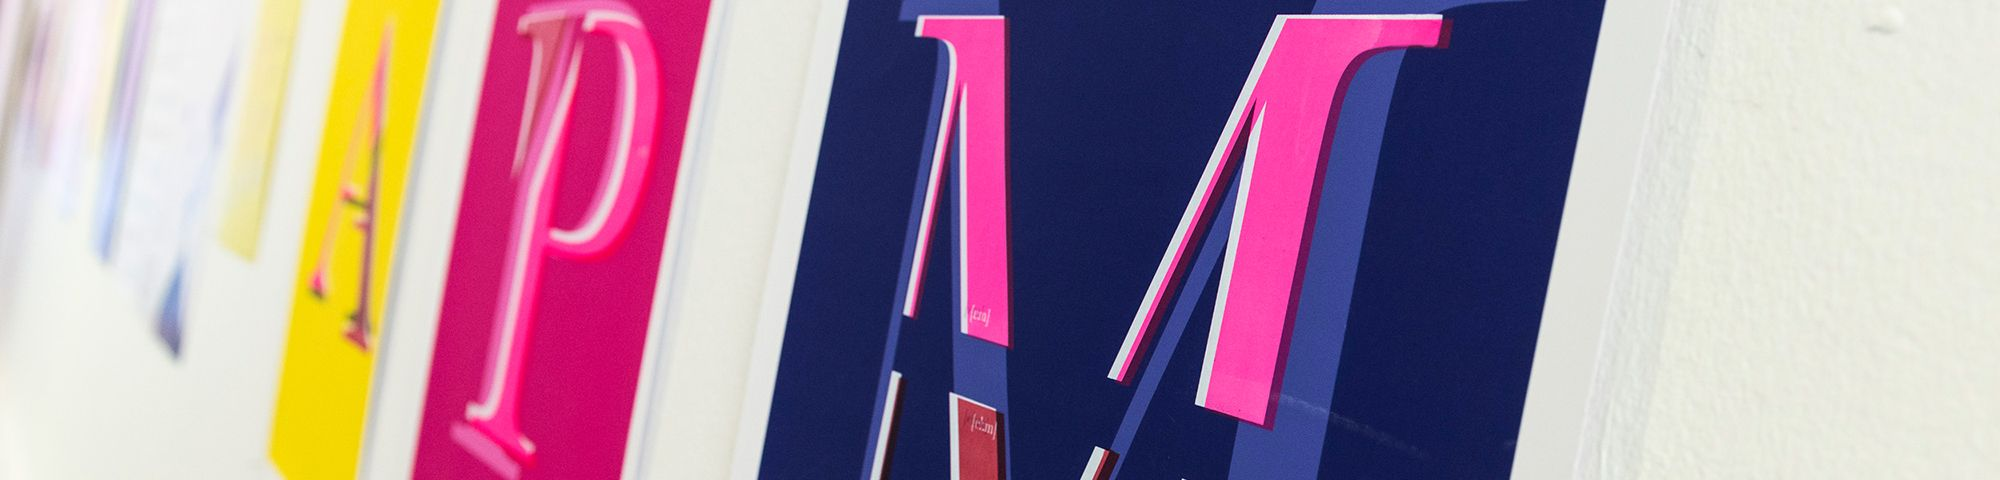 Installation image of graphic screen-printed posters in a range of colours